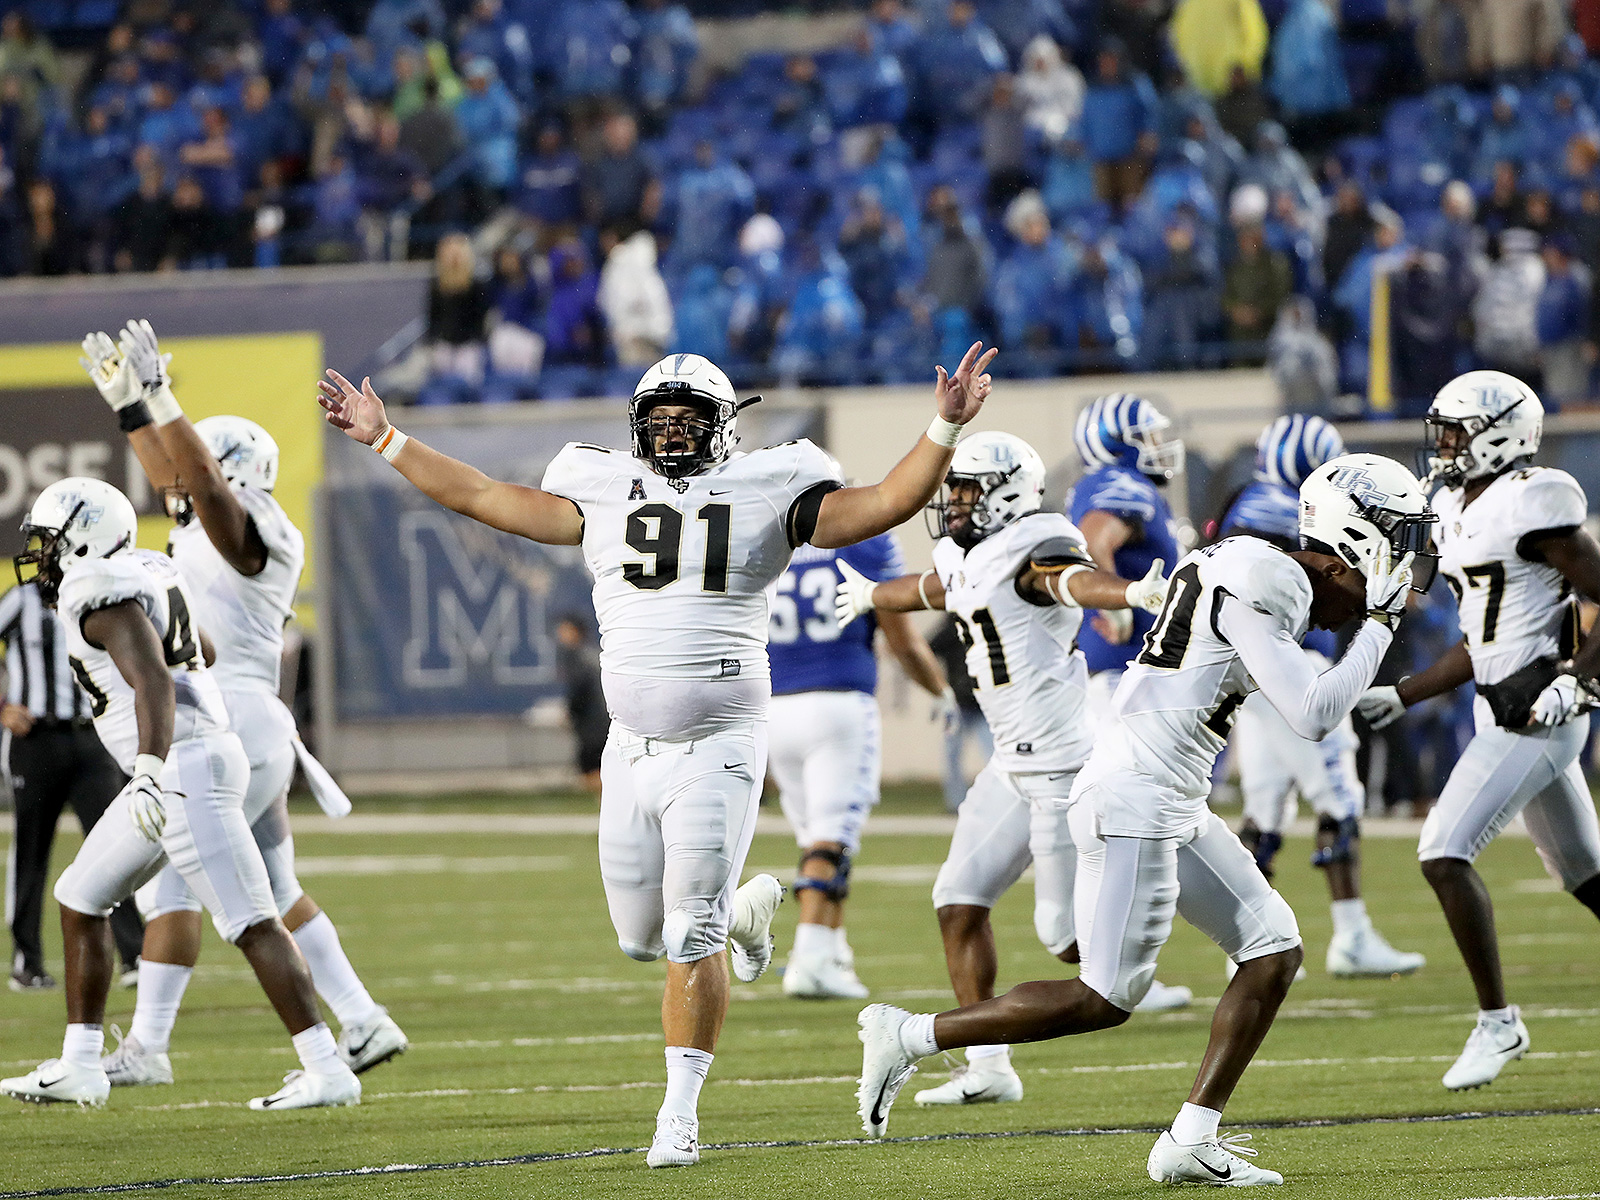 UCF Joey Connors